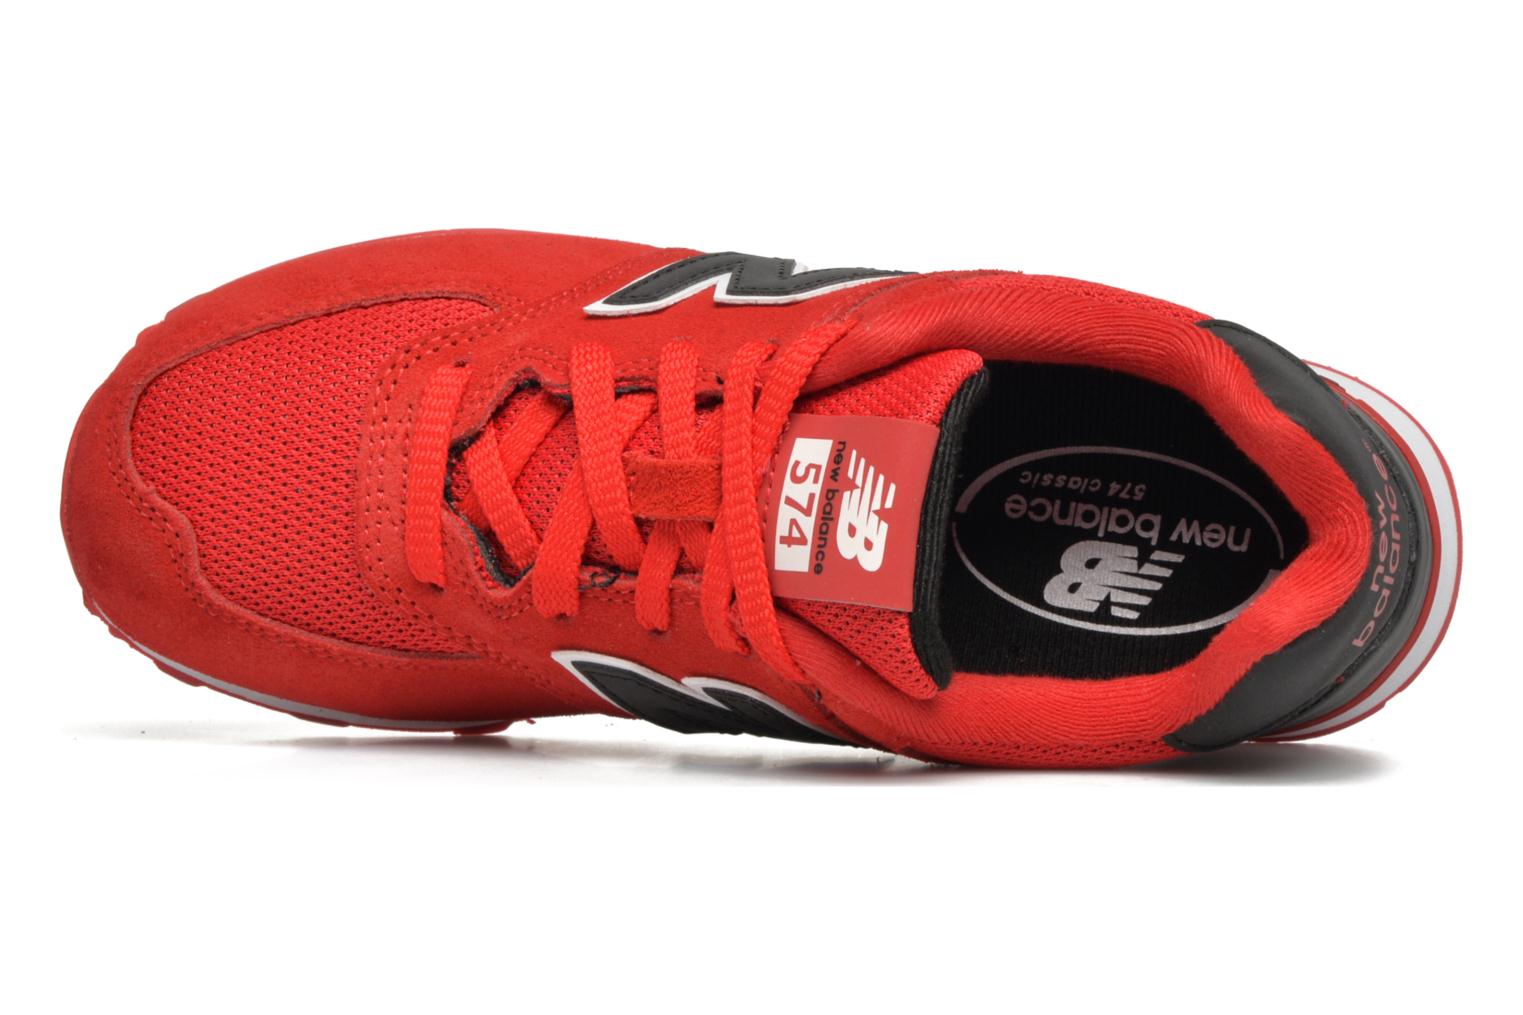 KL574 J CXP CXG Red/Black